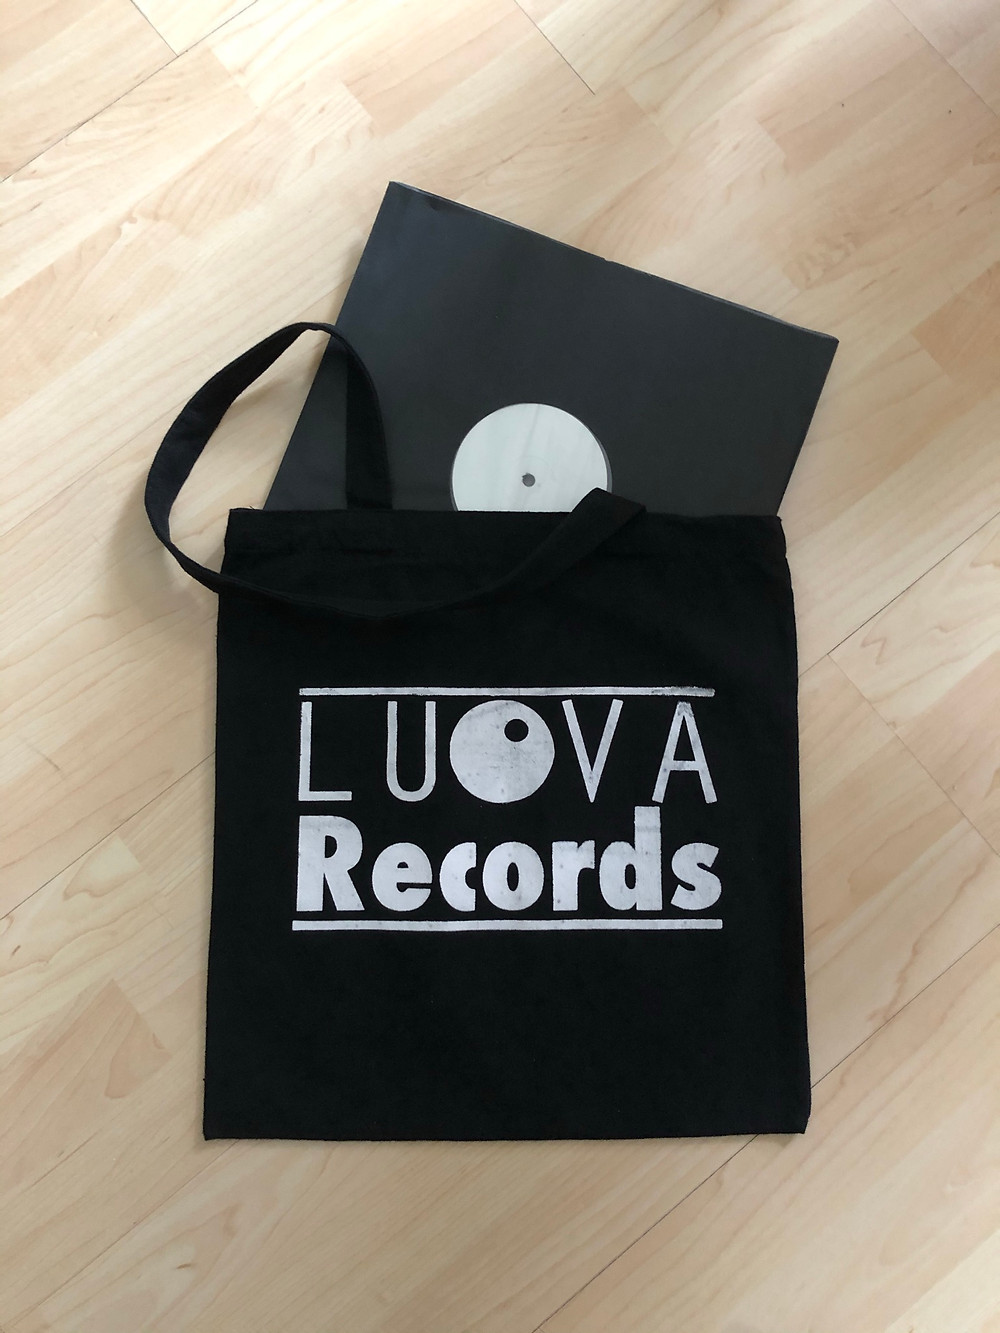 Vinyl record sleeve showing a white label, peeking out from a Luova Records tote bag